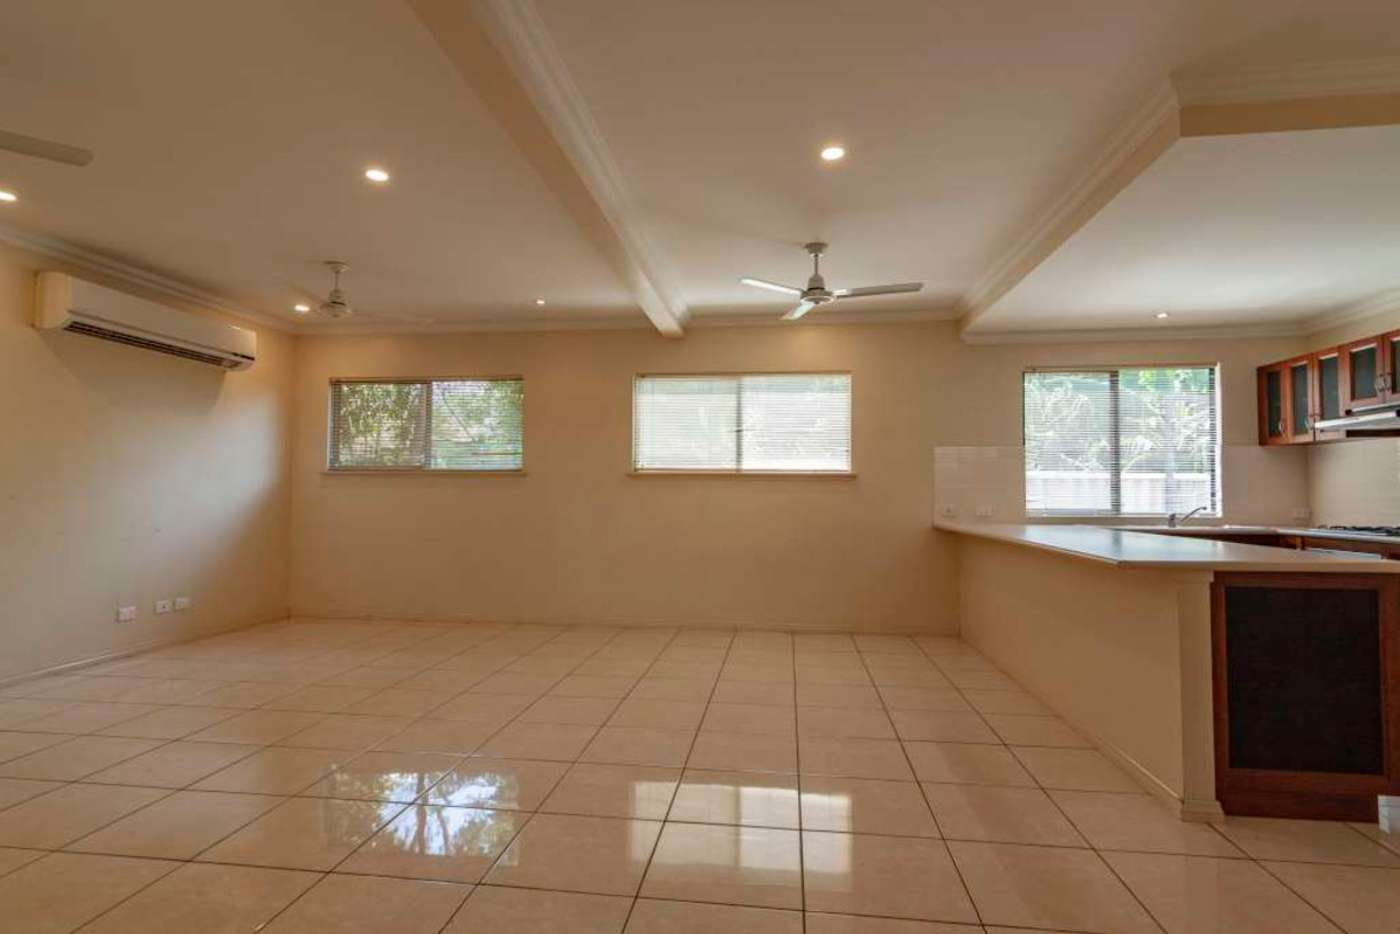 Sixth view of Homely house listing, 3/10 Barringtonia Avenue, Kununurra WA 6743